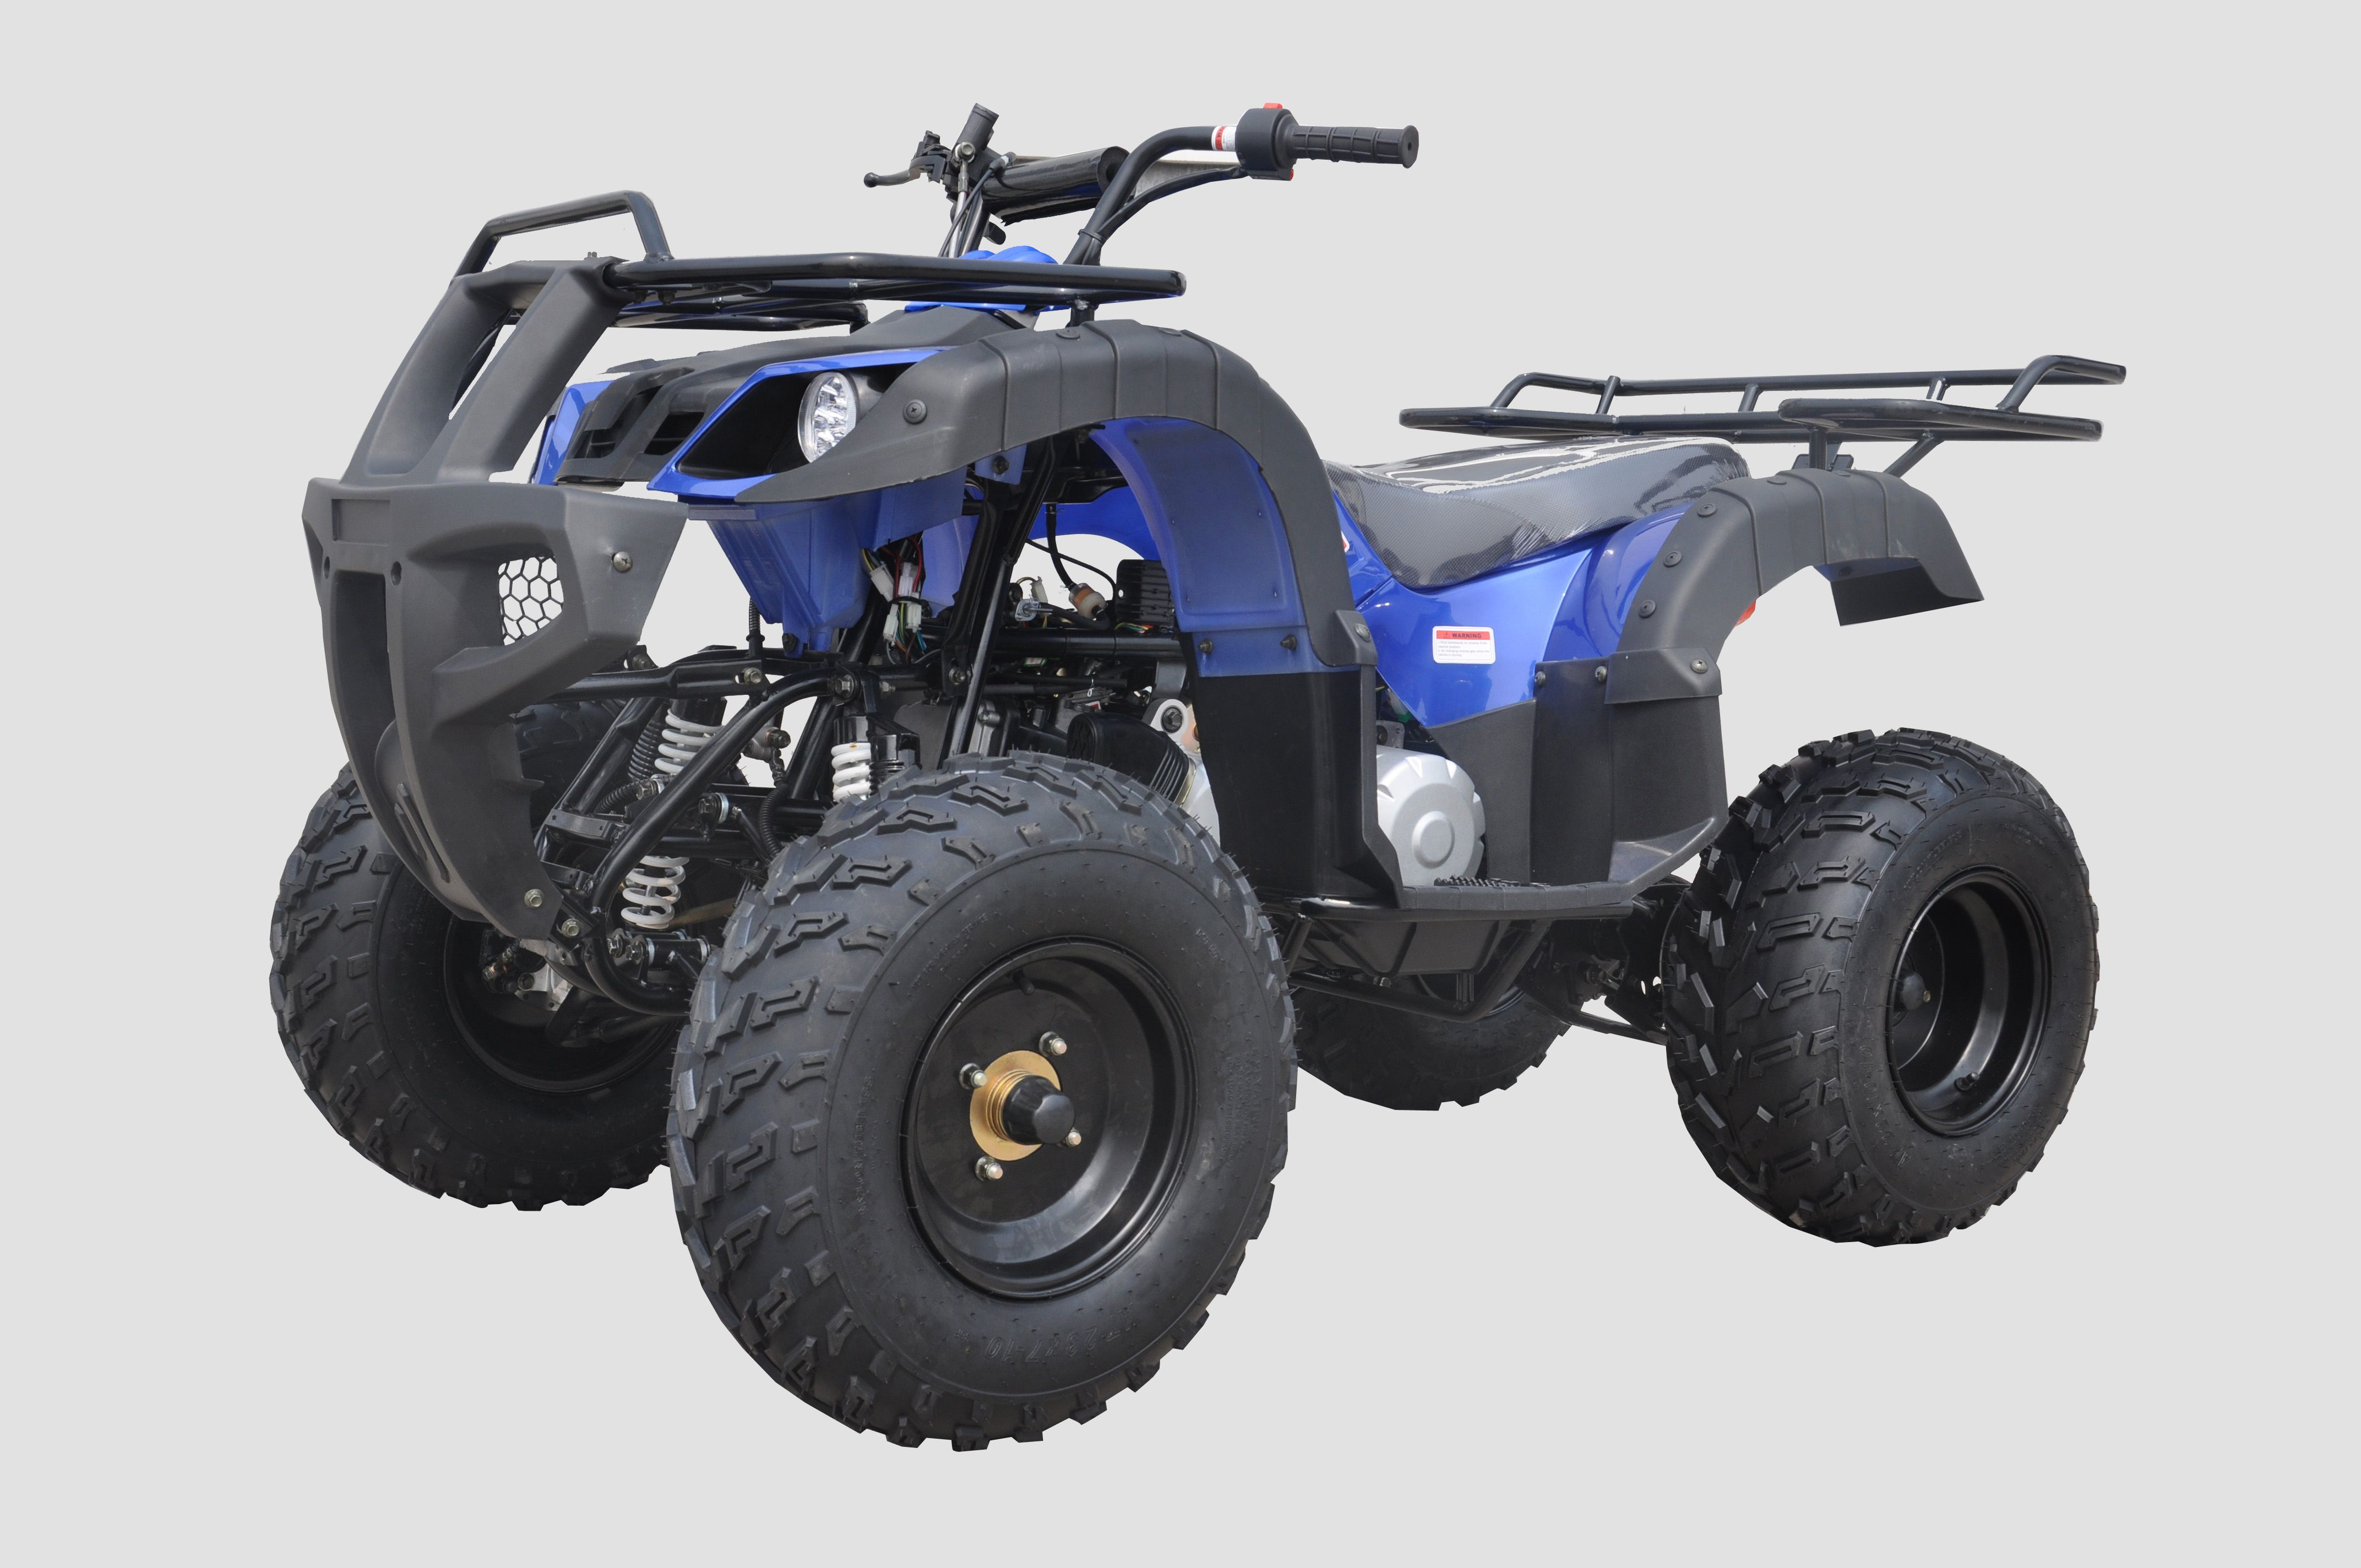 The Tradepeak Quad Is Very Easy To Ride Shifting Gears Is Simple